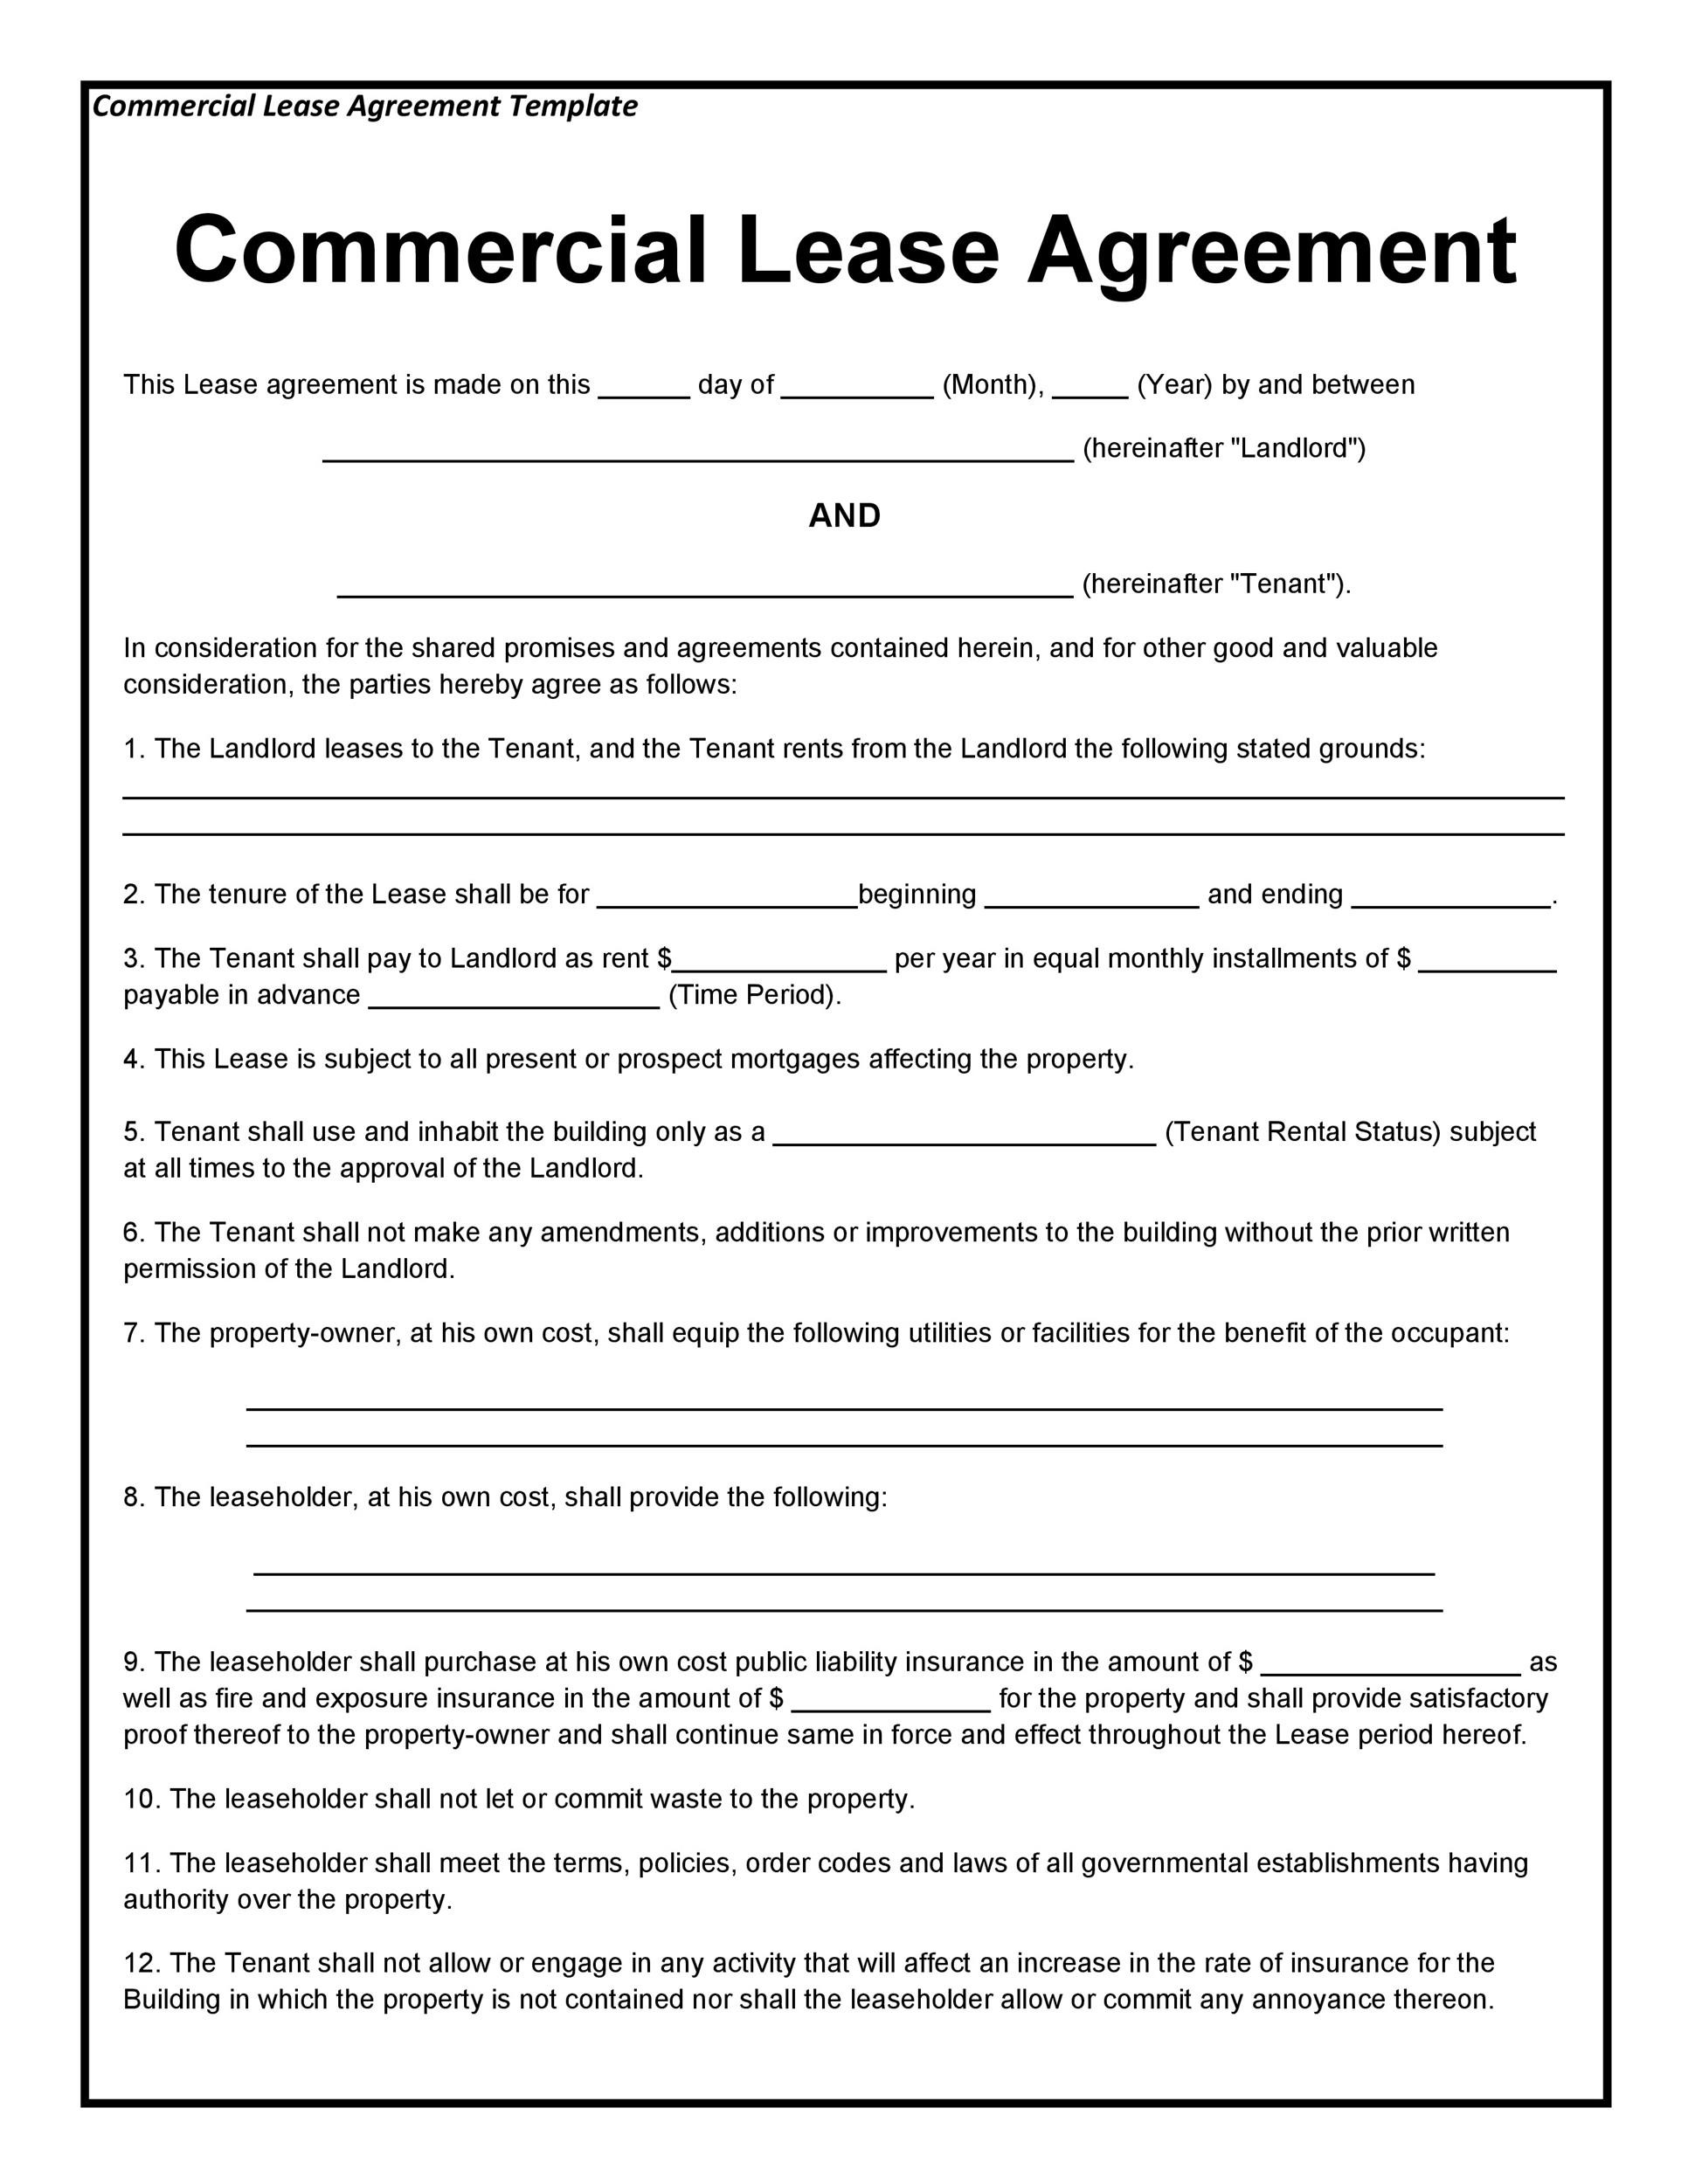 Leasing Agreement For Commercial Properties